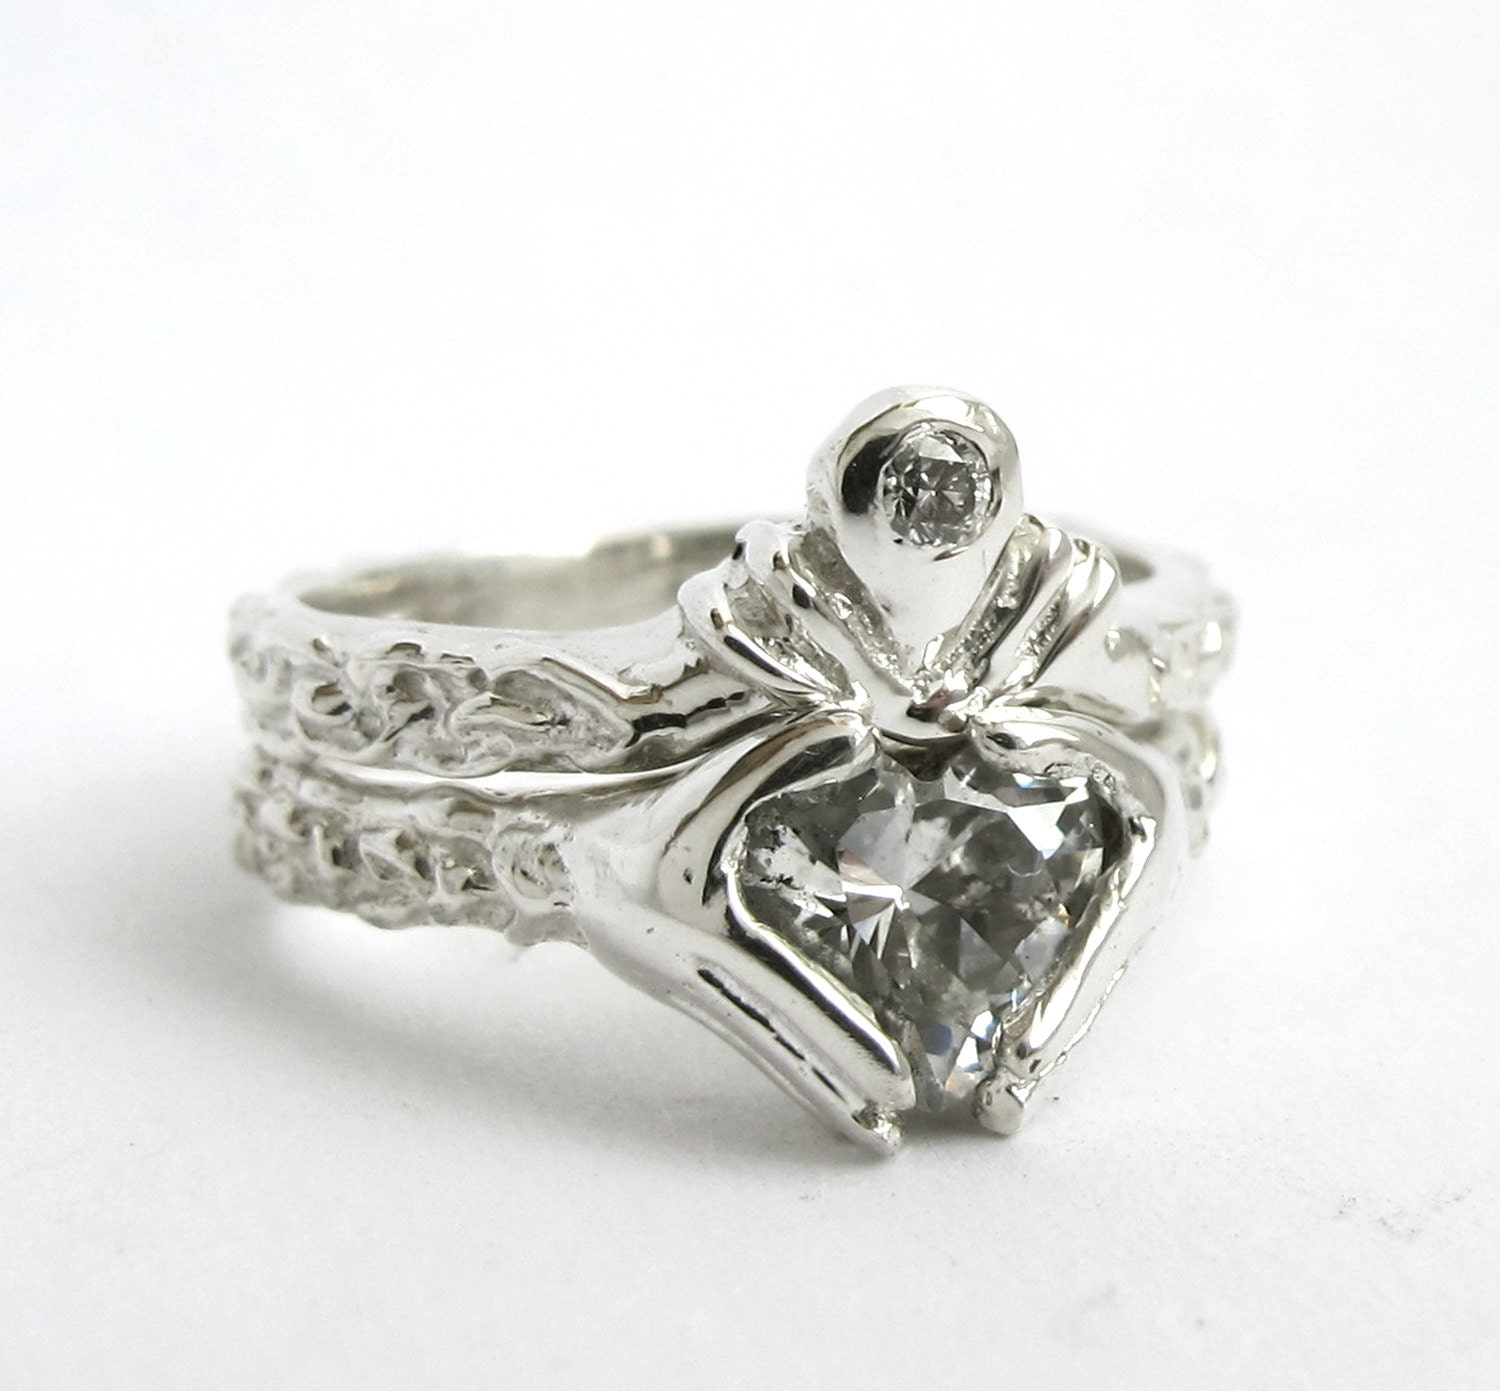 claddagh ring wedding set white gold and blue topaz